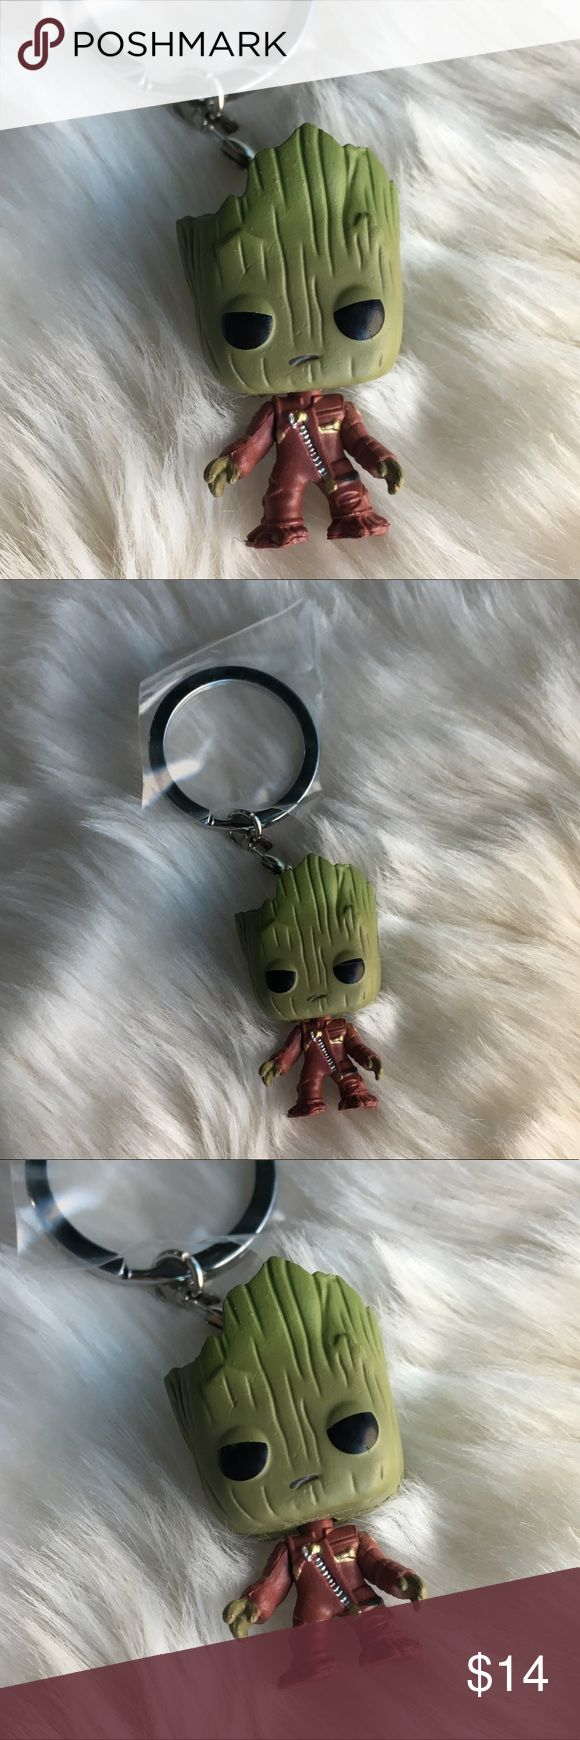 Baby Groot Keychain Brand new keychain- toddler Groot from Marvel's Guardians of the Galaxy 2 Guardians of the Galaxy Accessories